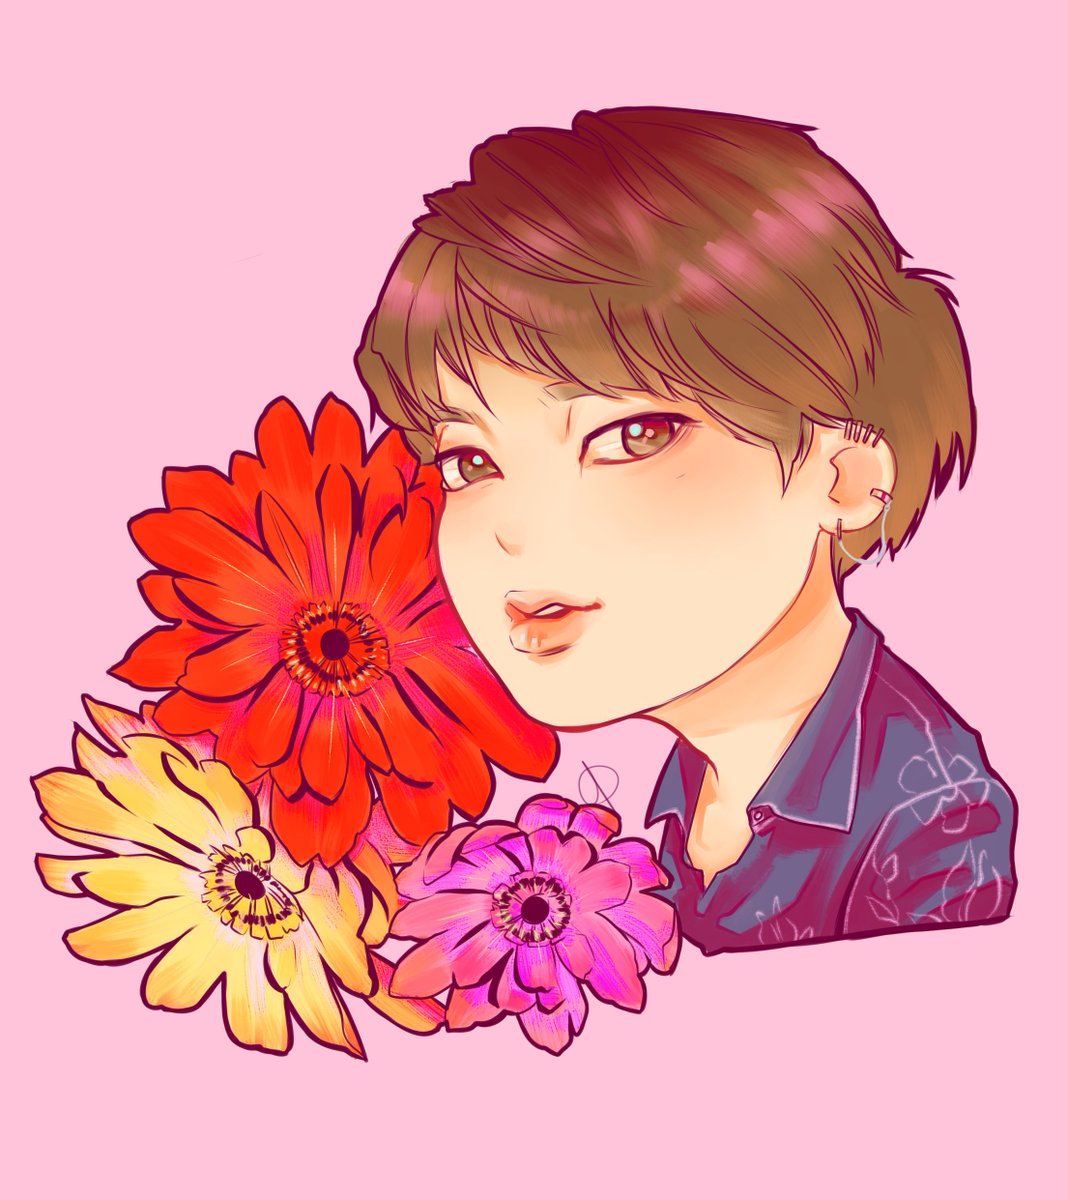 I barely touched my tablet in the past couple of days as I am busy packing so heres the only finished drawing I made of our Worldwide Handsome~ 🌸Happy Birthday to the prettiest flower!🌸 #JINDAY #HappyJinDay #TonightAndAlwaysWithJin #JinOurDecemberStar #OurFlowerofDecember